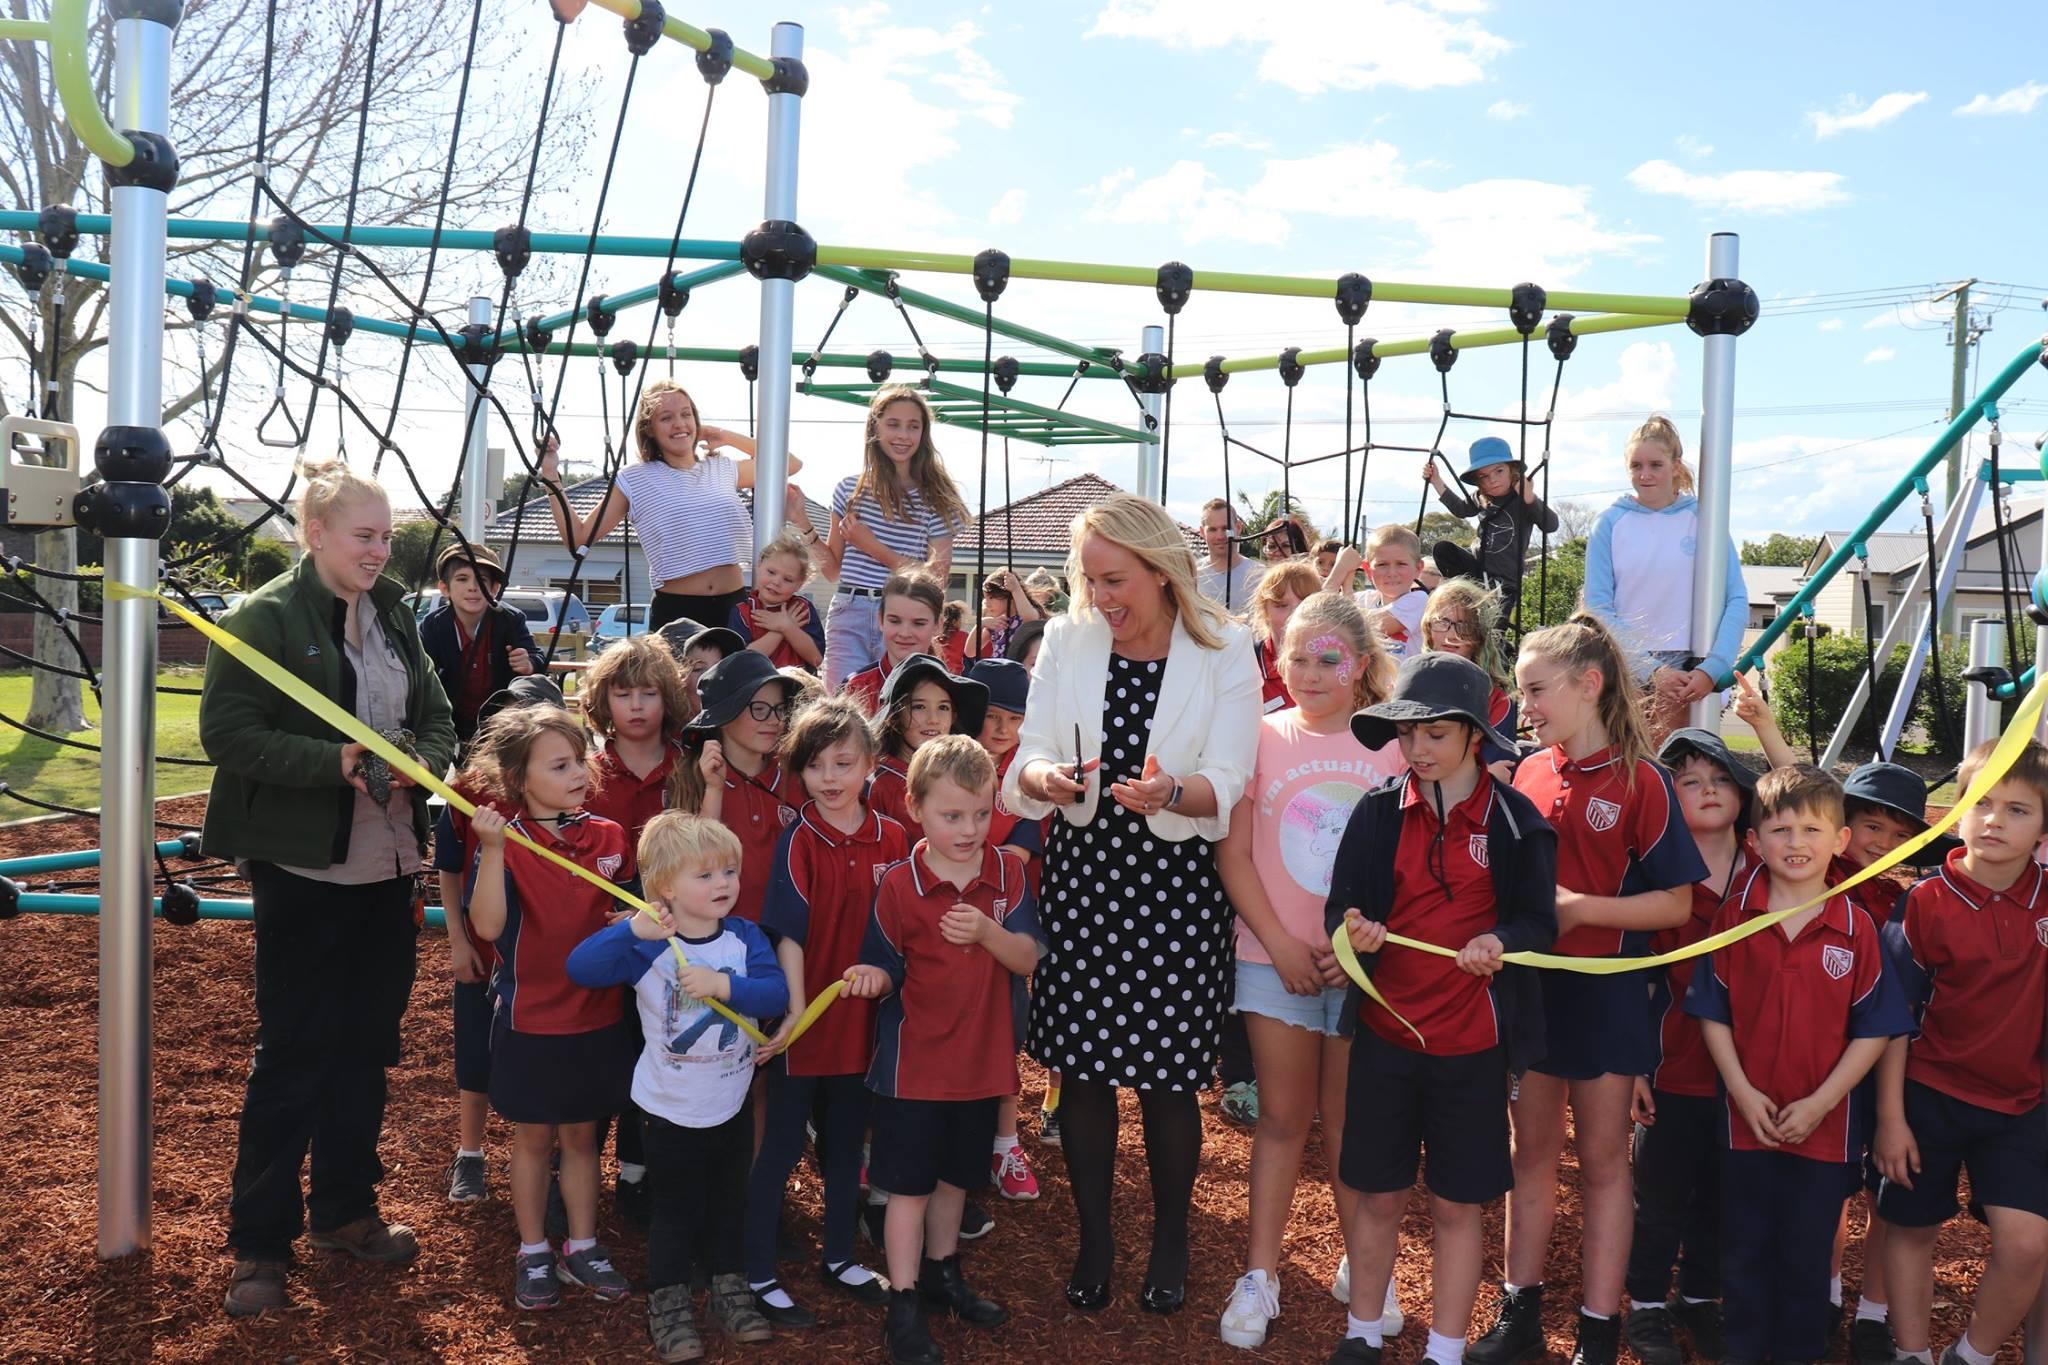 We're working hard to improve our parks and playgrounds across the City of Newcastle